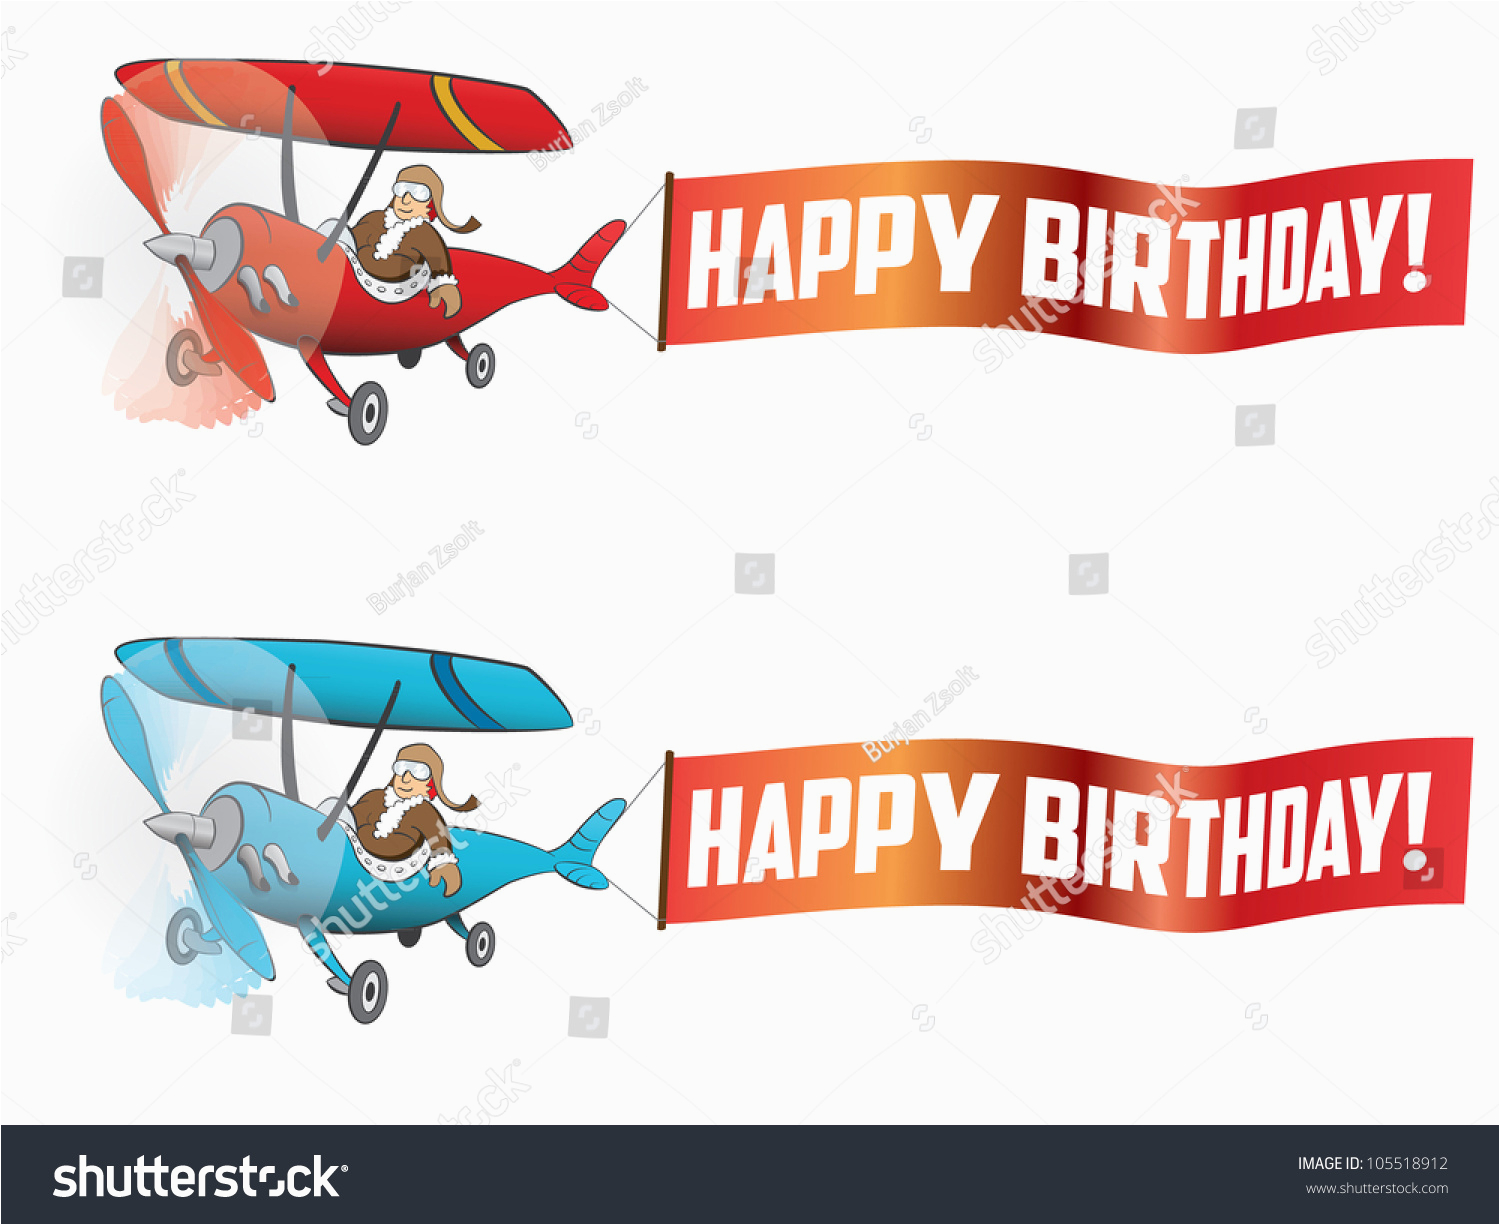 stock vector flying aircraft with happy birthday banner